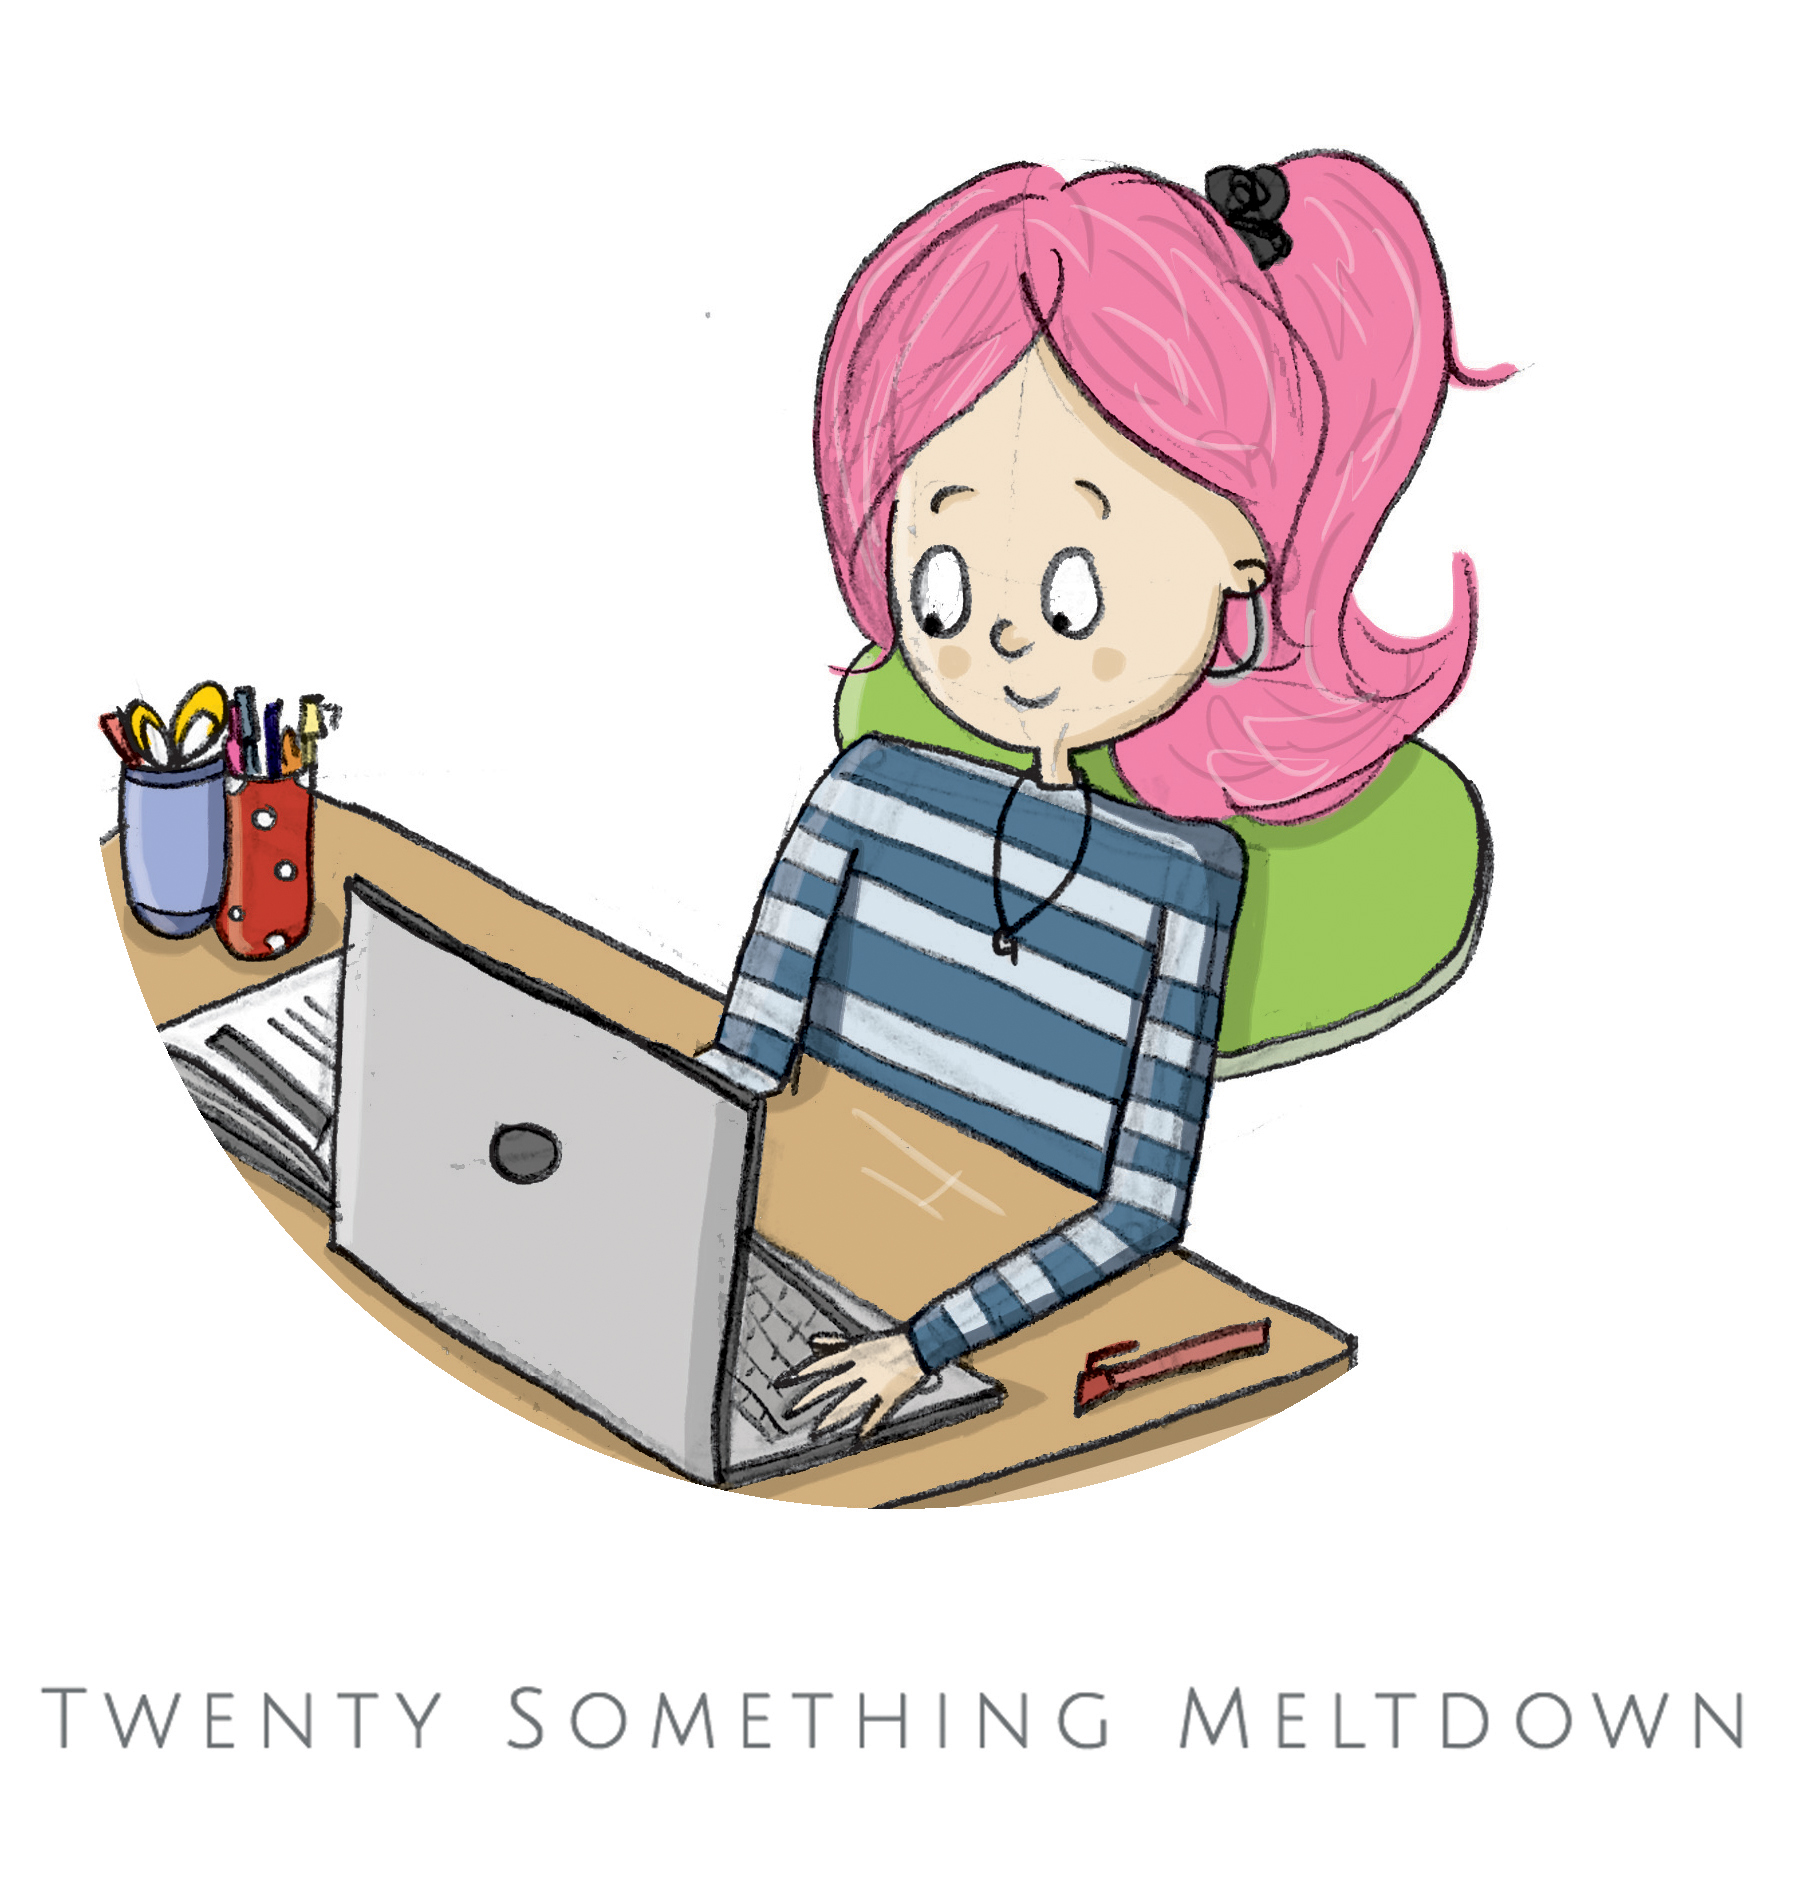 Twenty Something Meltdown - Meet my August Advertisers | lazythoughts.co.uk